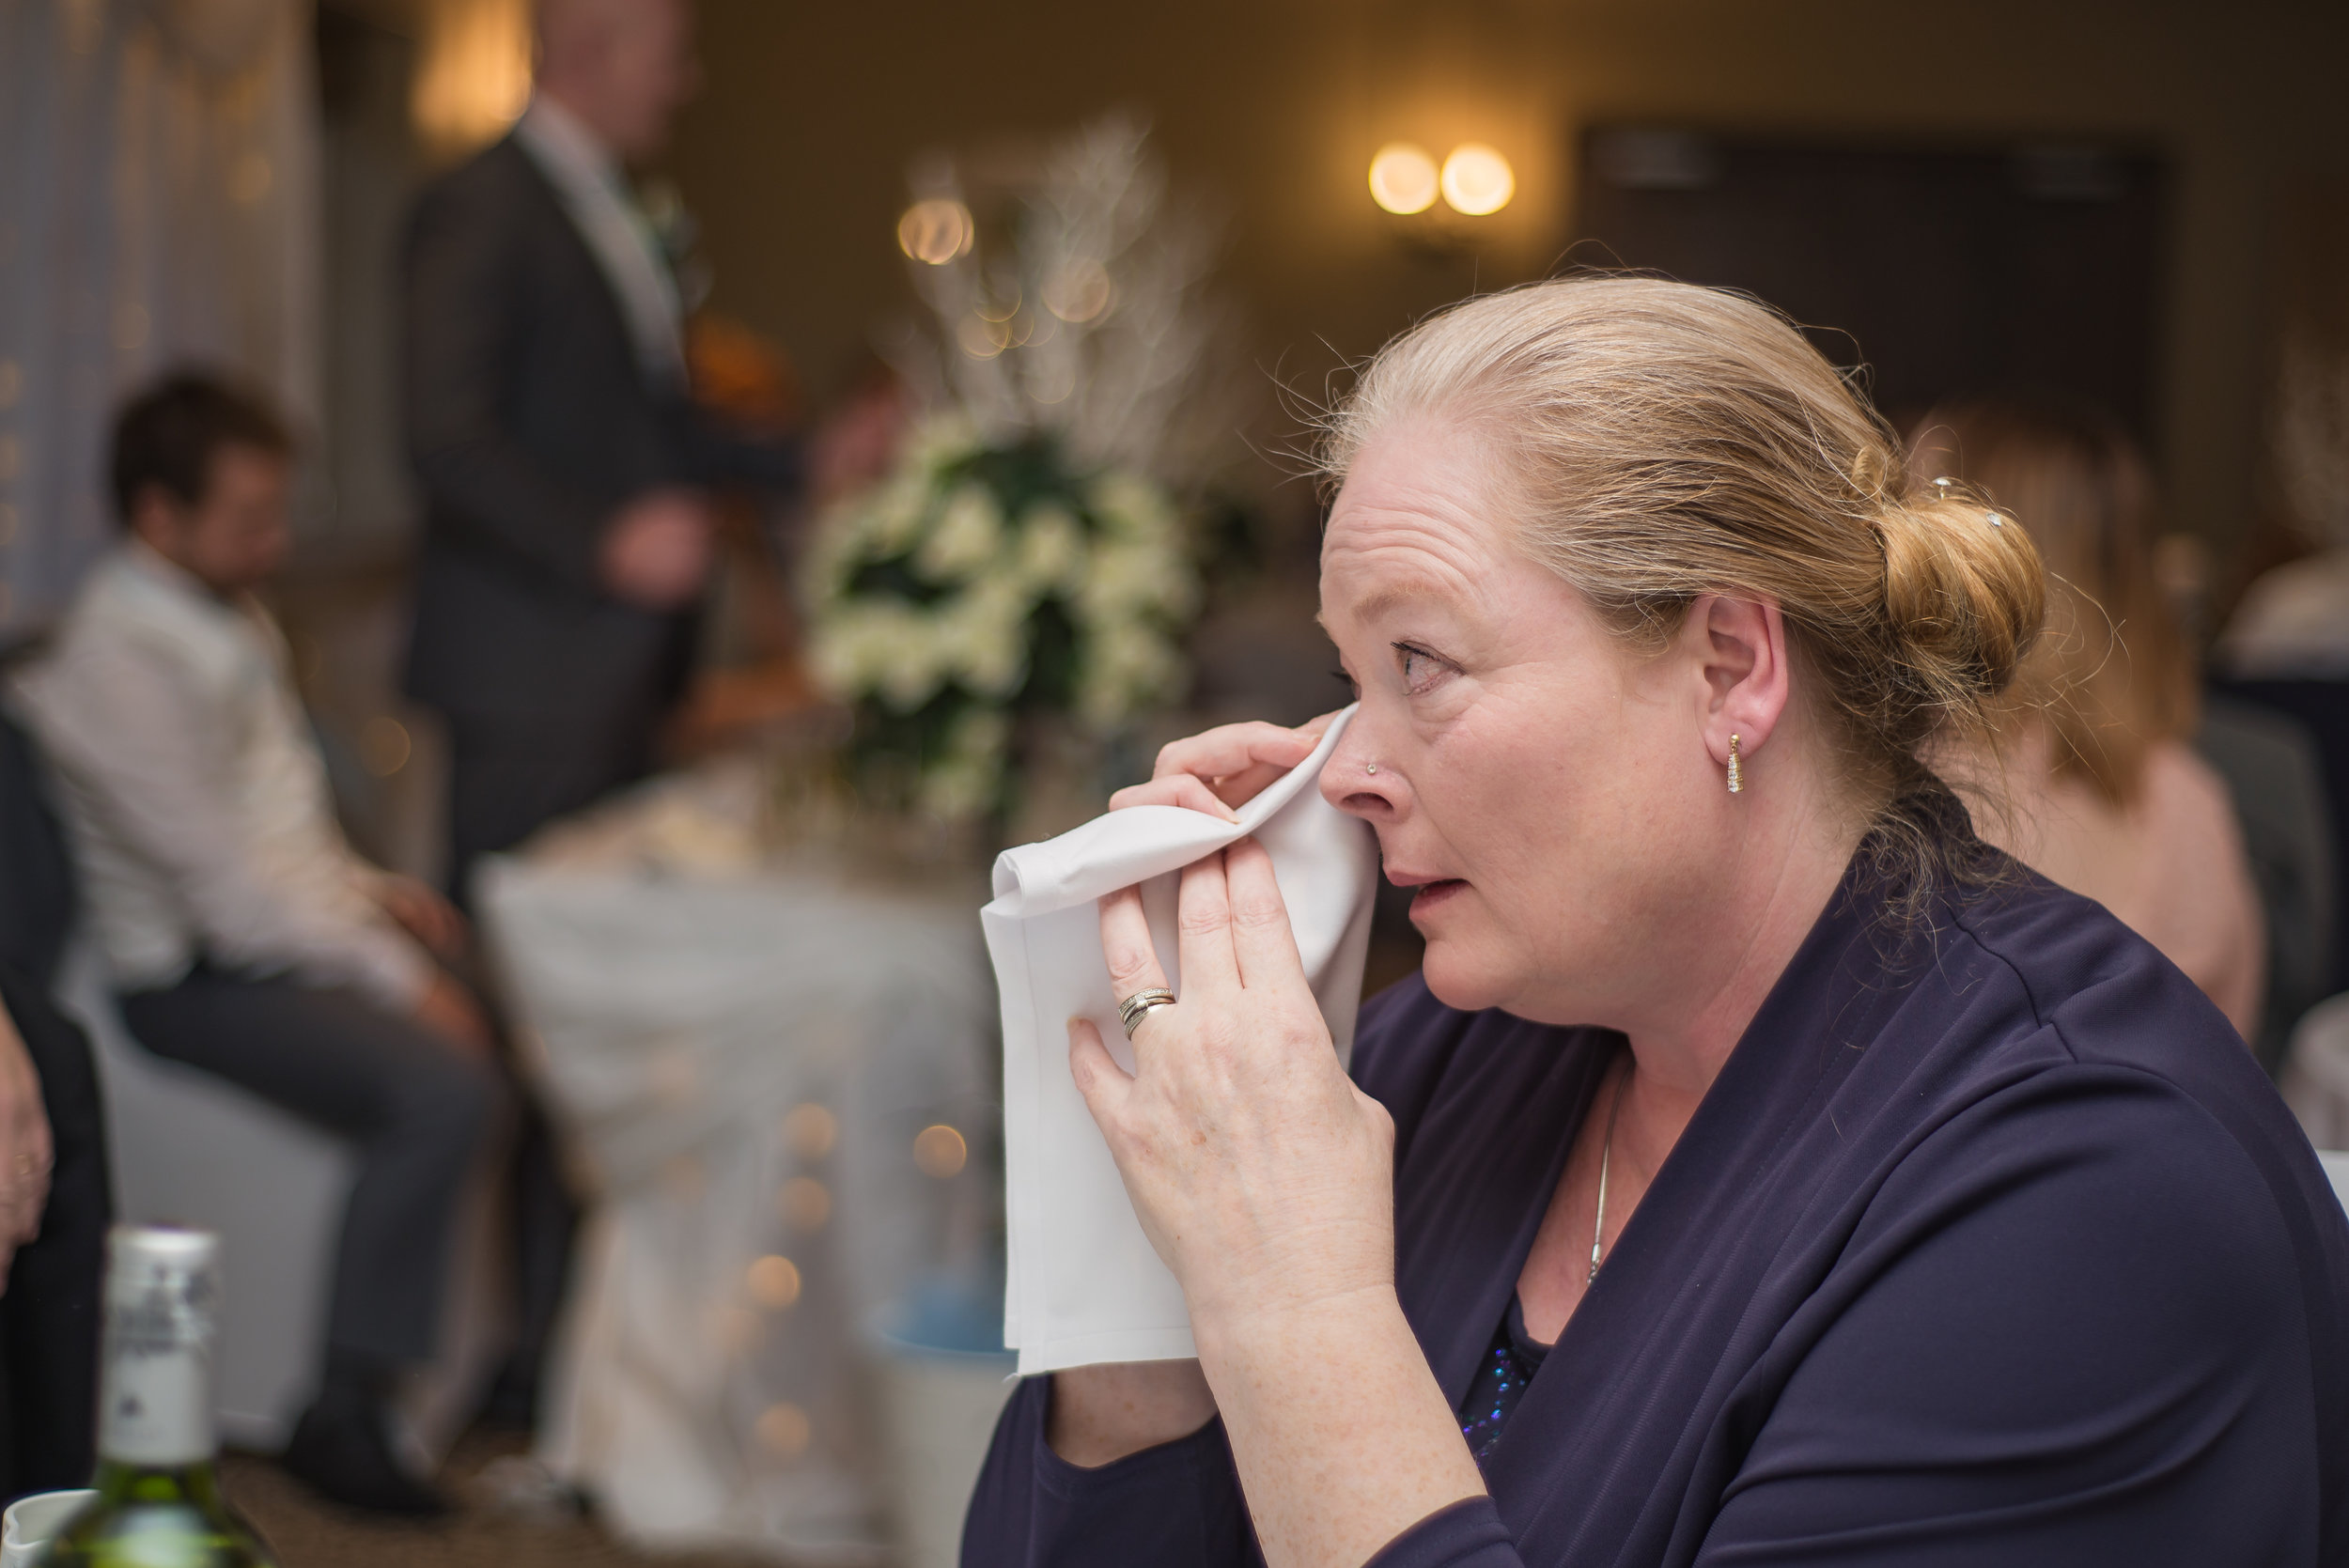 wedding photography and wedding videography, emotional mother of the groom crying over grooms speech